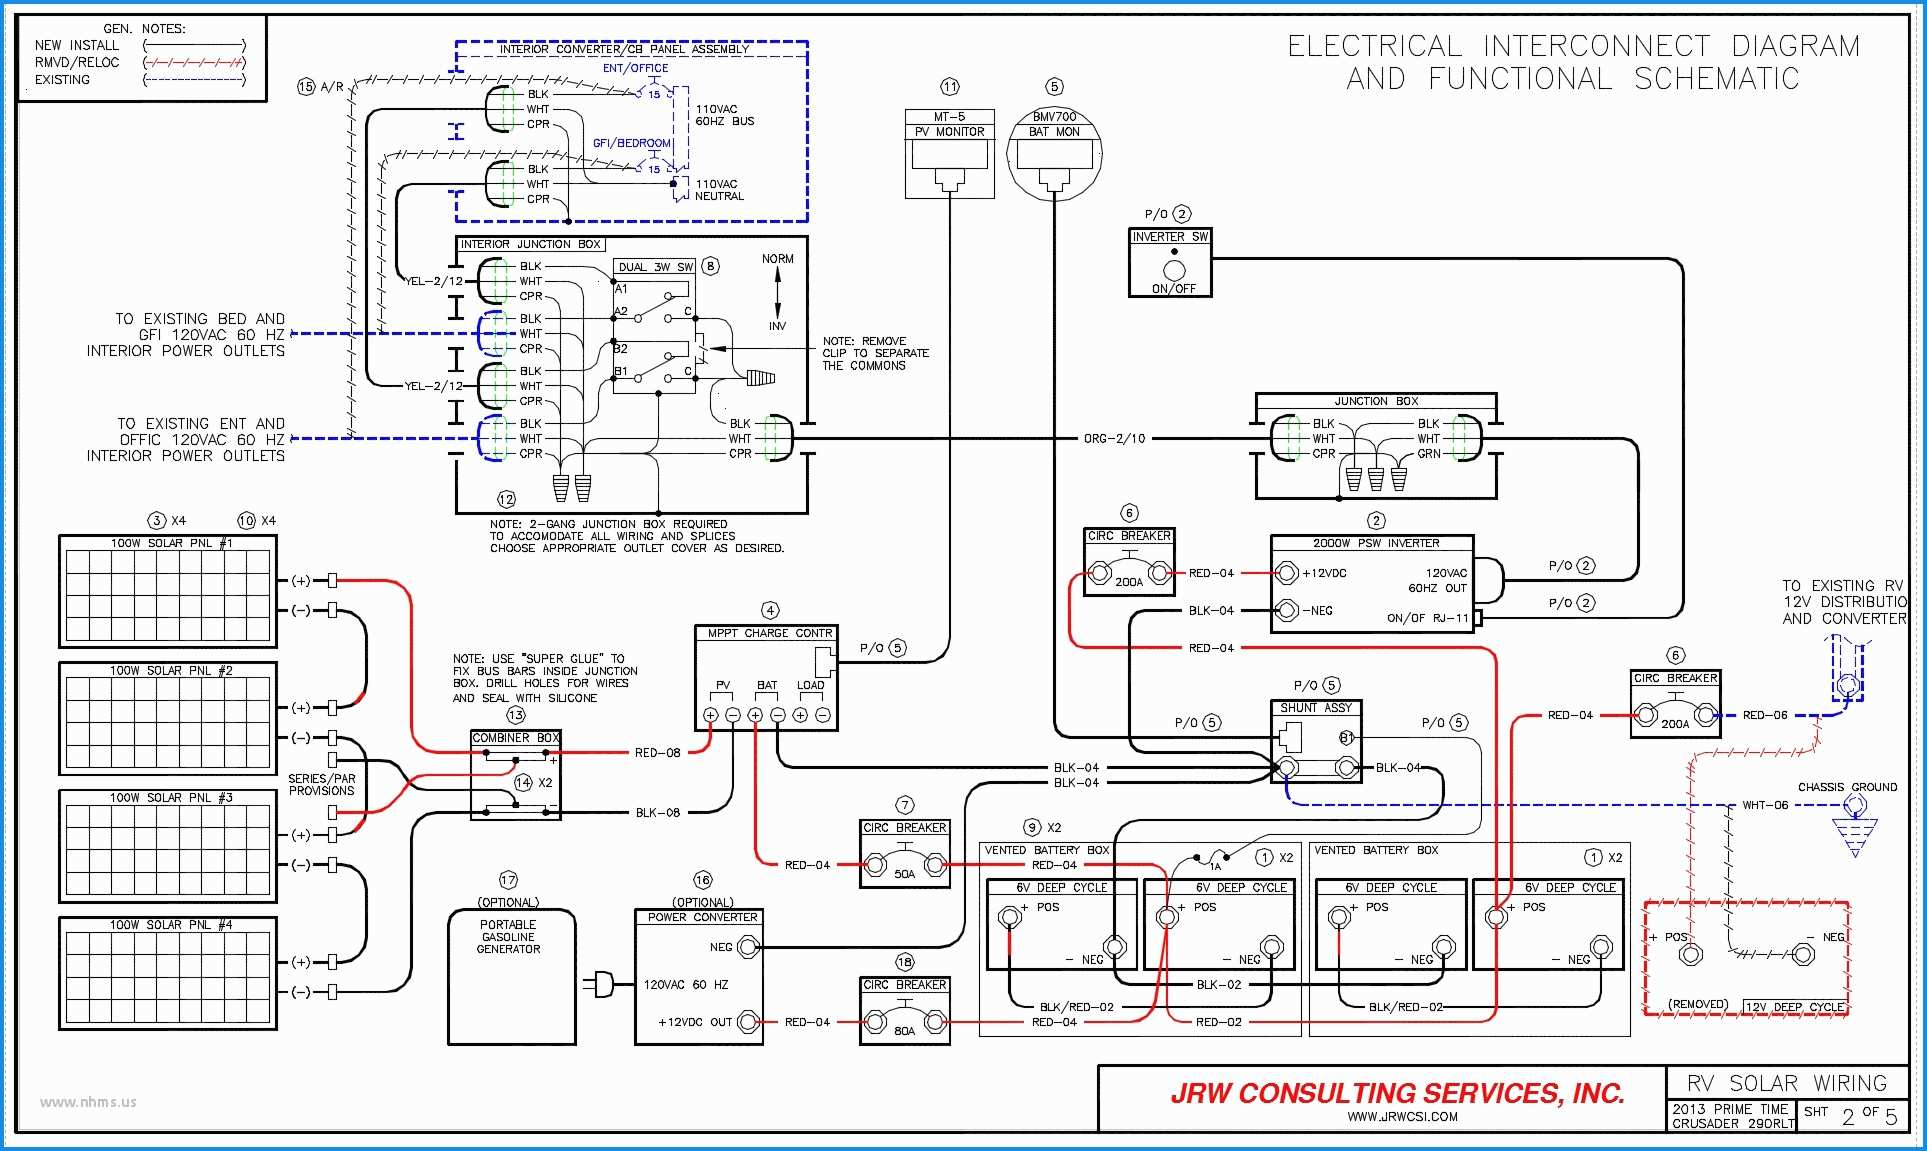 2004 Jayco Wiring Diagram | Manual E-Books - Jayco Camper Trailer Wiring Diagram